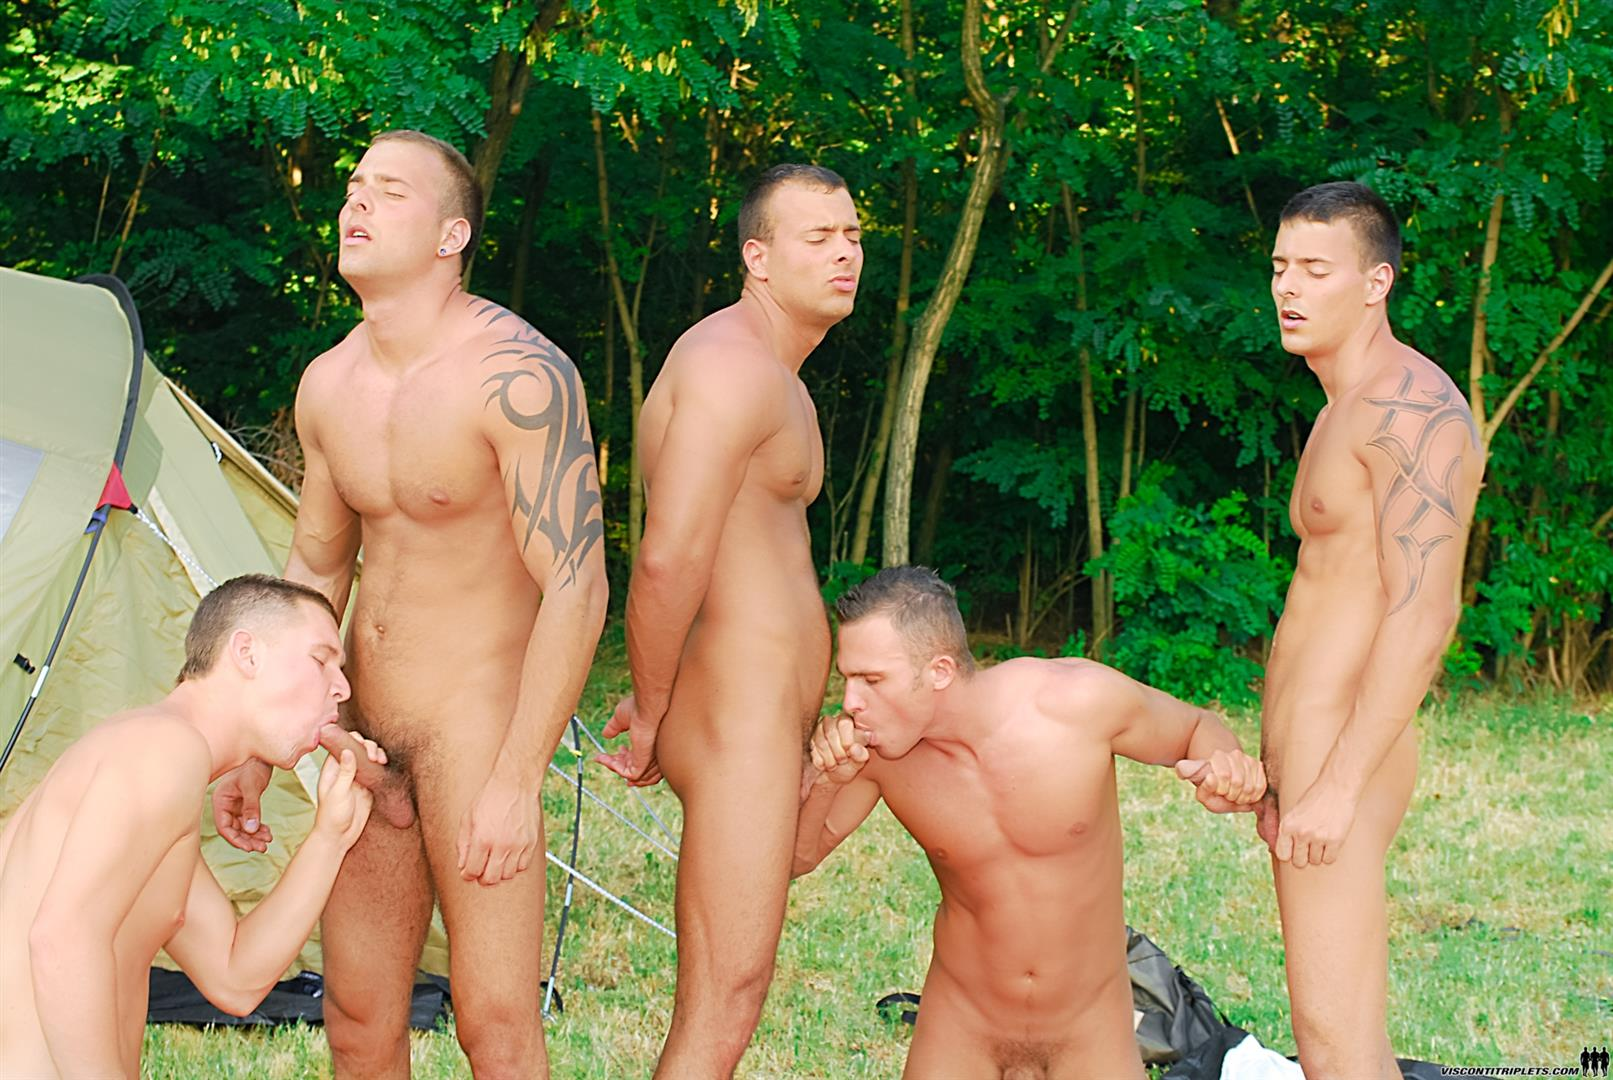 Visconti-Triplets-Jason-Visconti-Jimmy-Visconti-Joey-Visconti-Giuseppe-Pardi-Fucking-During-A-Camping-Trip-Amateur-Gay-Porn-09 Visconti Triplets Tag Team Some Muscle Ass While Camping